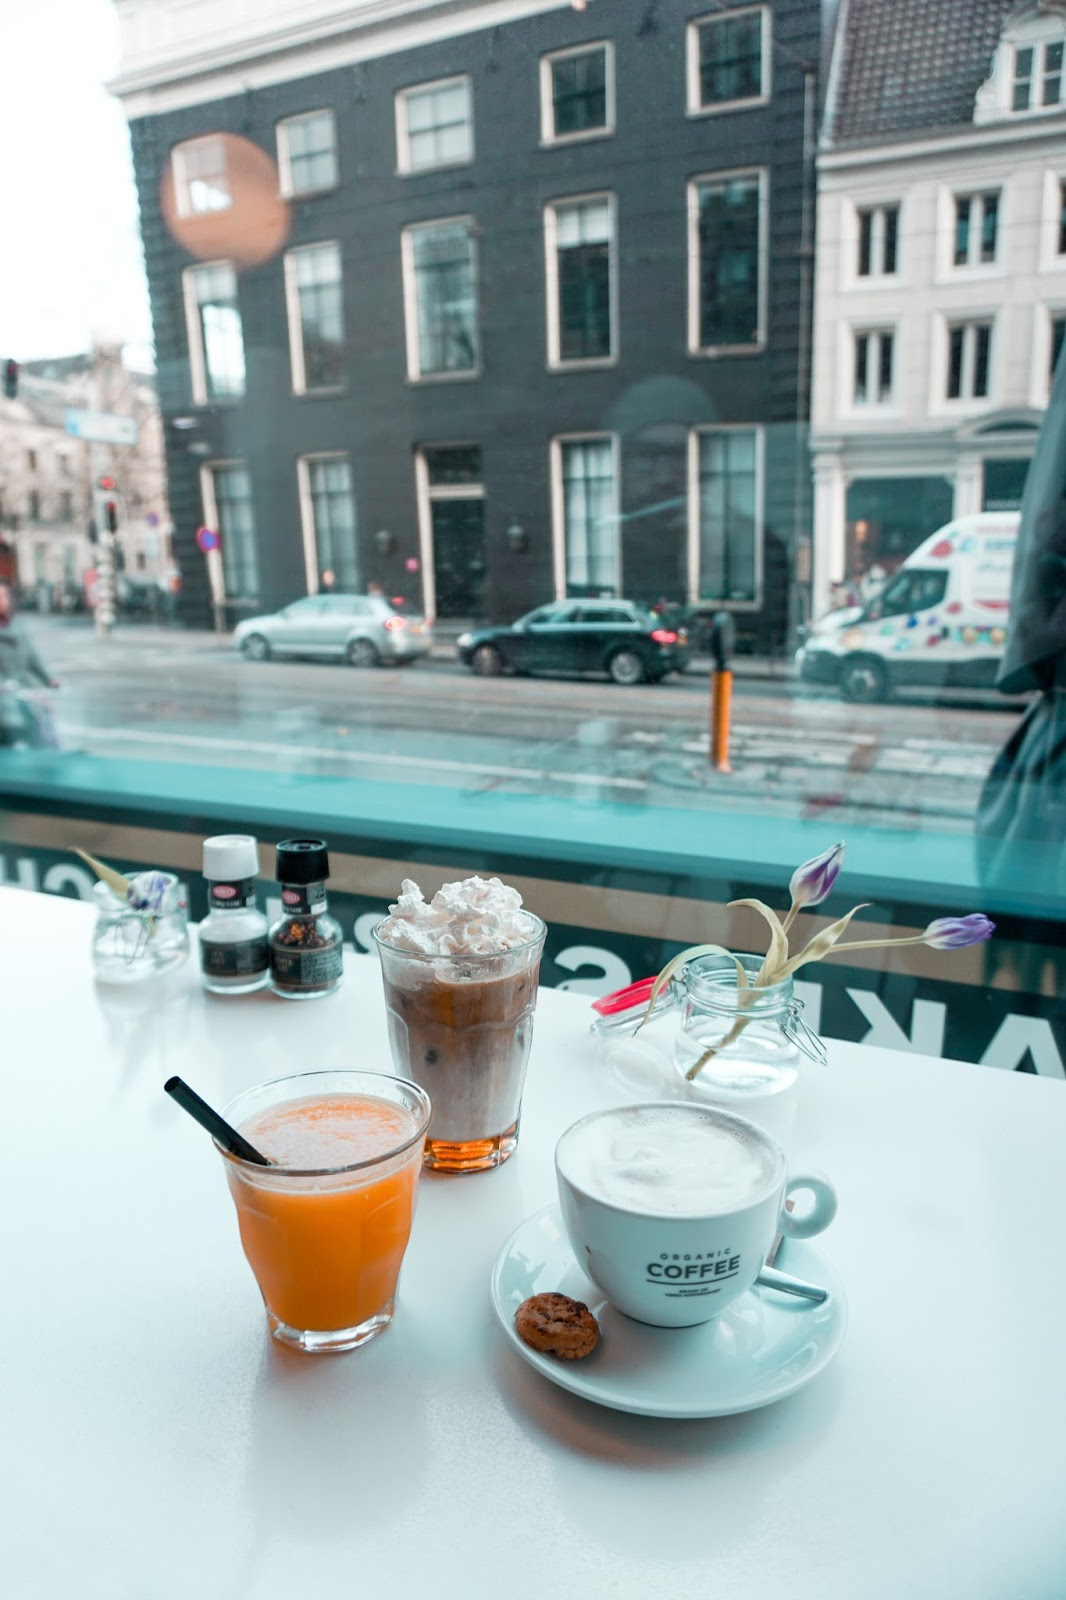 lifestyle blog, travel blog, travel girl, how to travel on a budget, amsterdam, netherlands, where to eat in amsterdam, amsterdam cafe, Omelegg Amsterdam, cafe de bazel in Amsterdam, trip to Amsterdam, what to see in Amsterdam, sightseeing Amsterdam